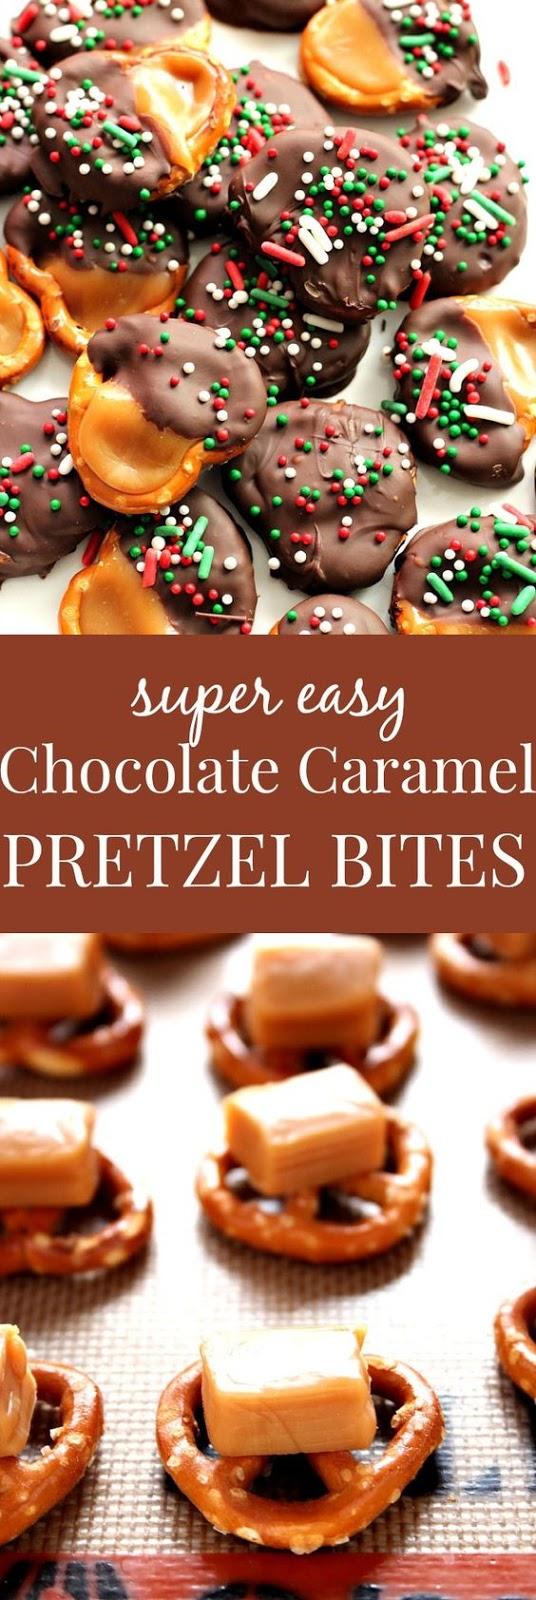 Easy Chocolate Caramel Pretzel Bites Recipe – super easy candy idea for the holidays! Great gift for chocolate and caramel lovers!